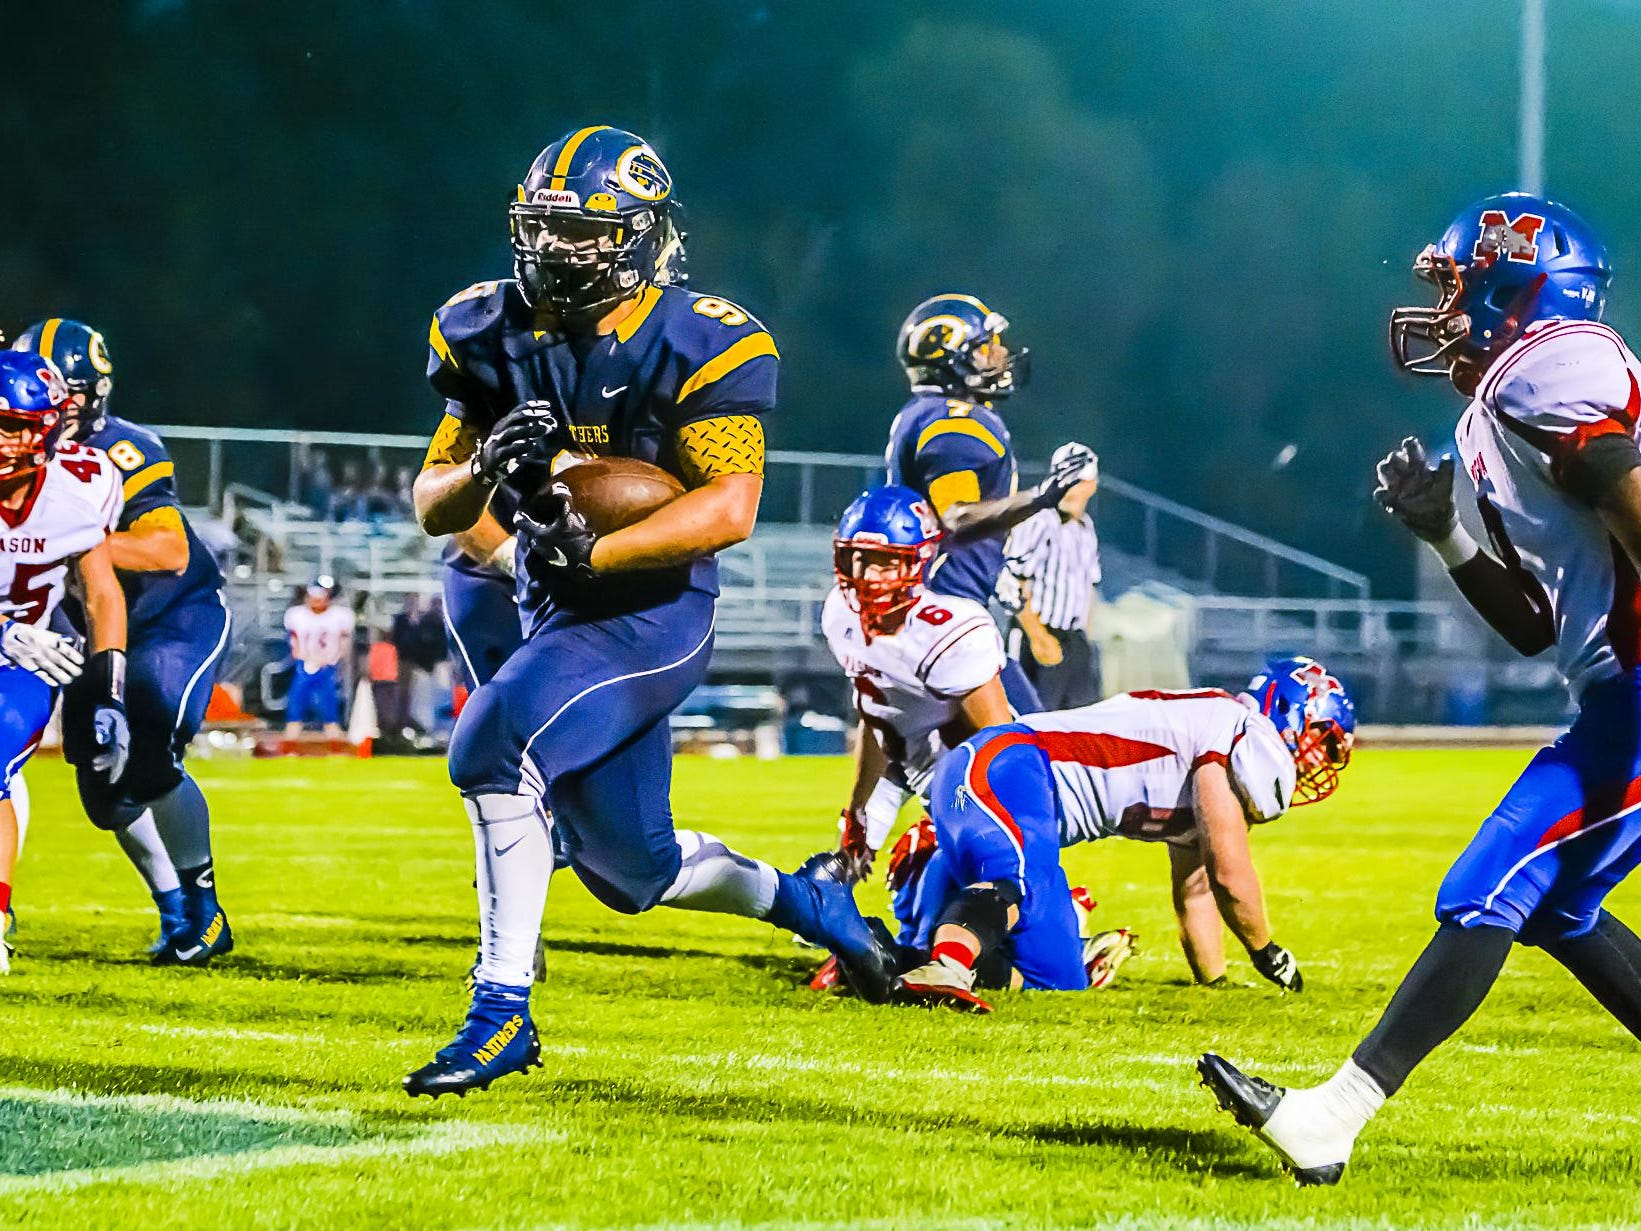 Rob Zimmerman and the DeWitt Panthers had Sept. 18 circled on their calendar for quite some time.